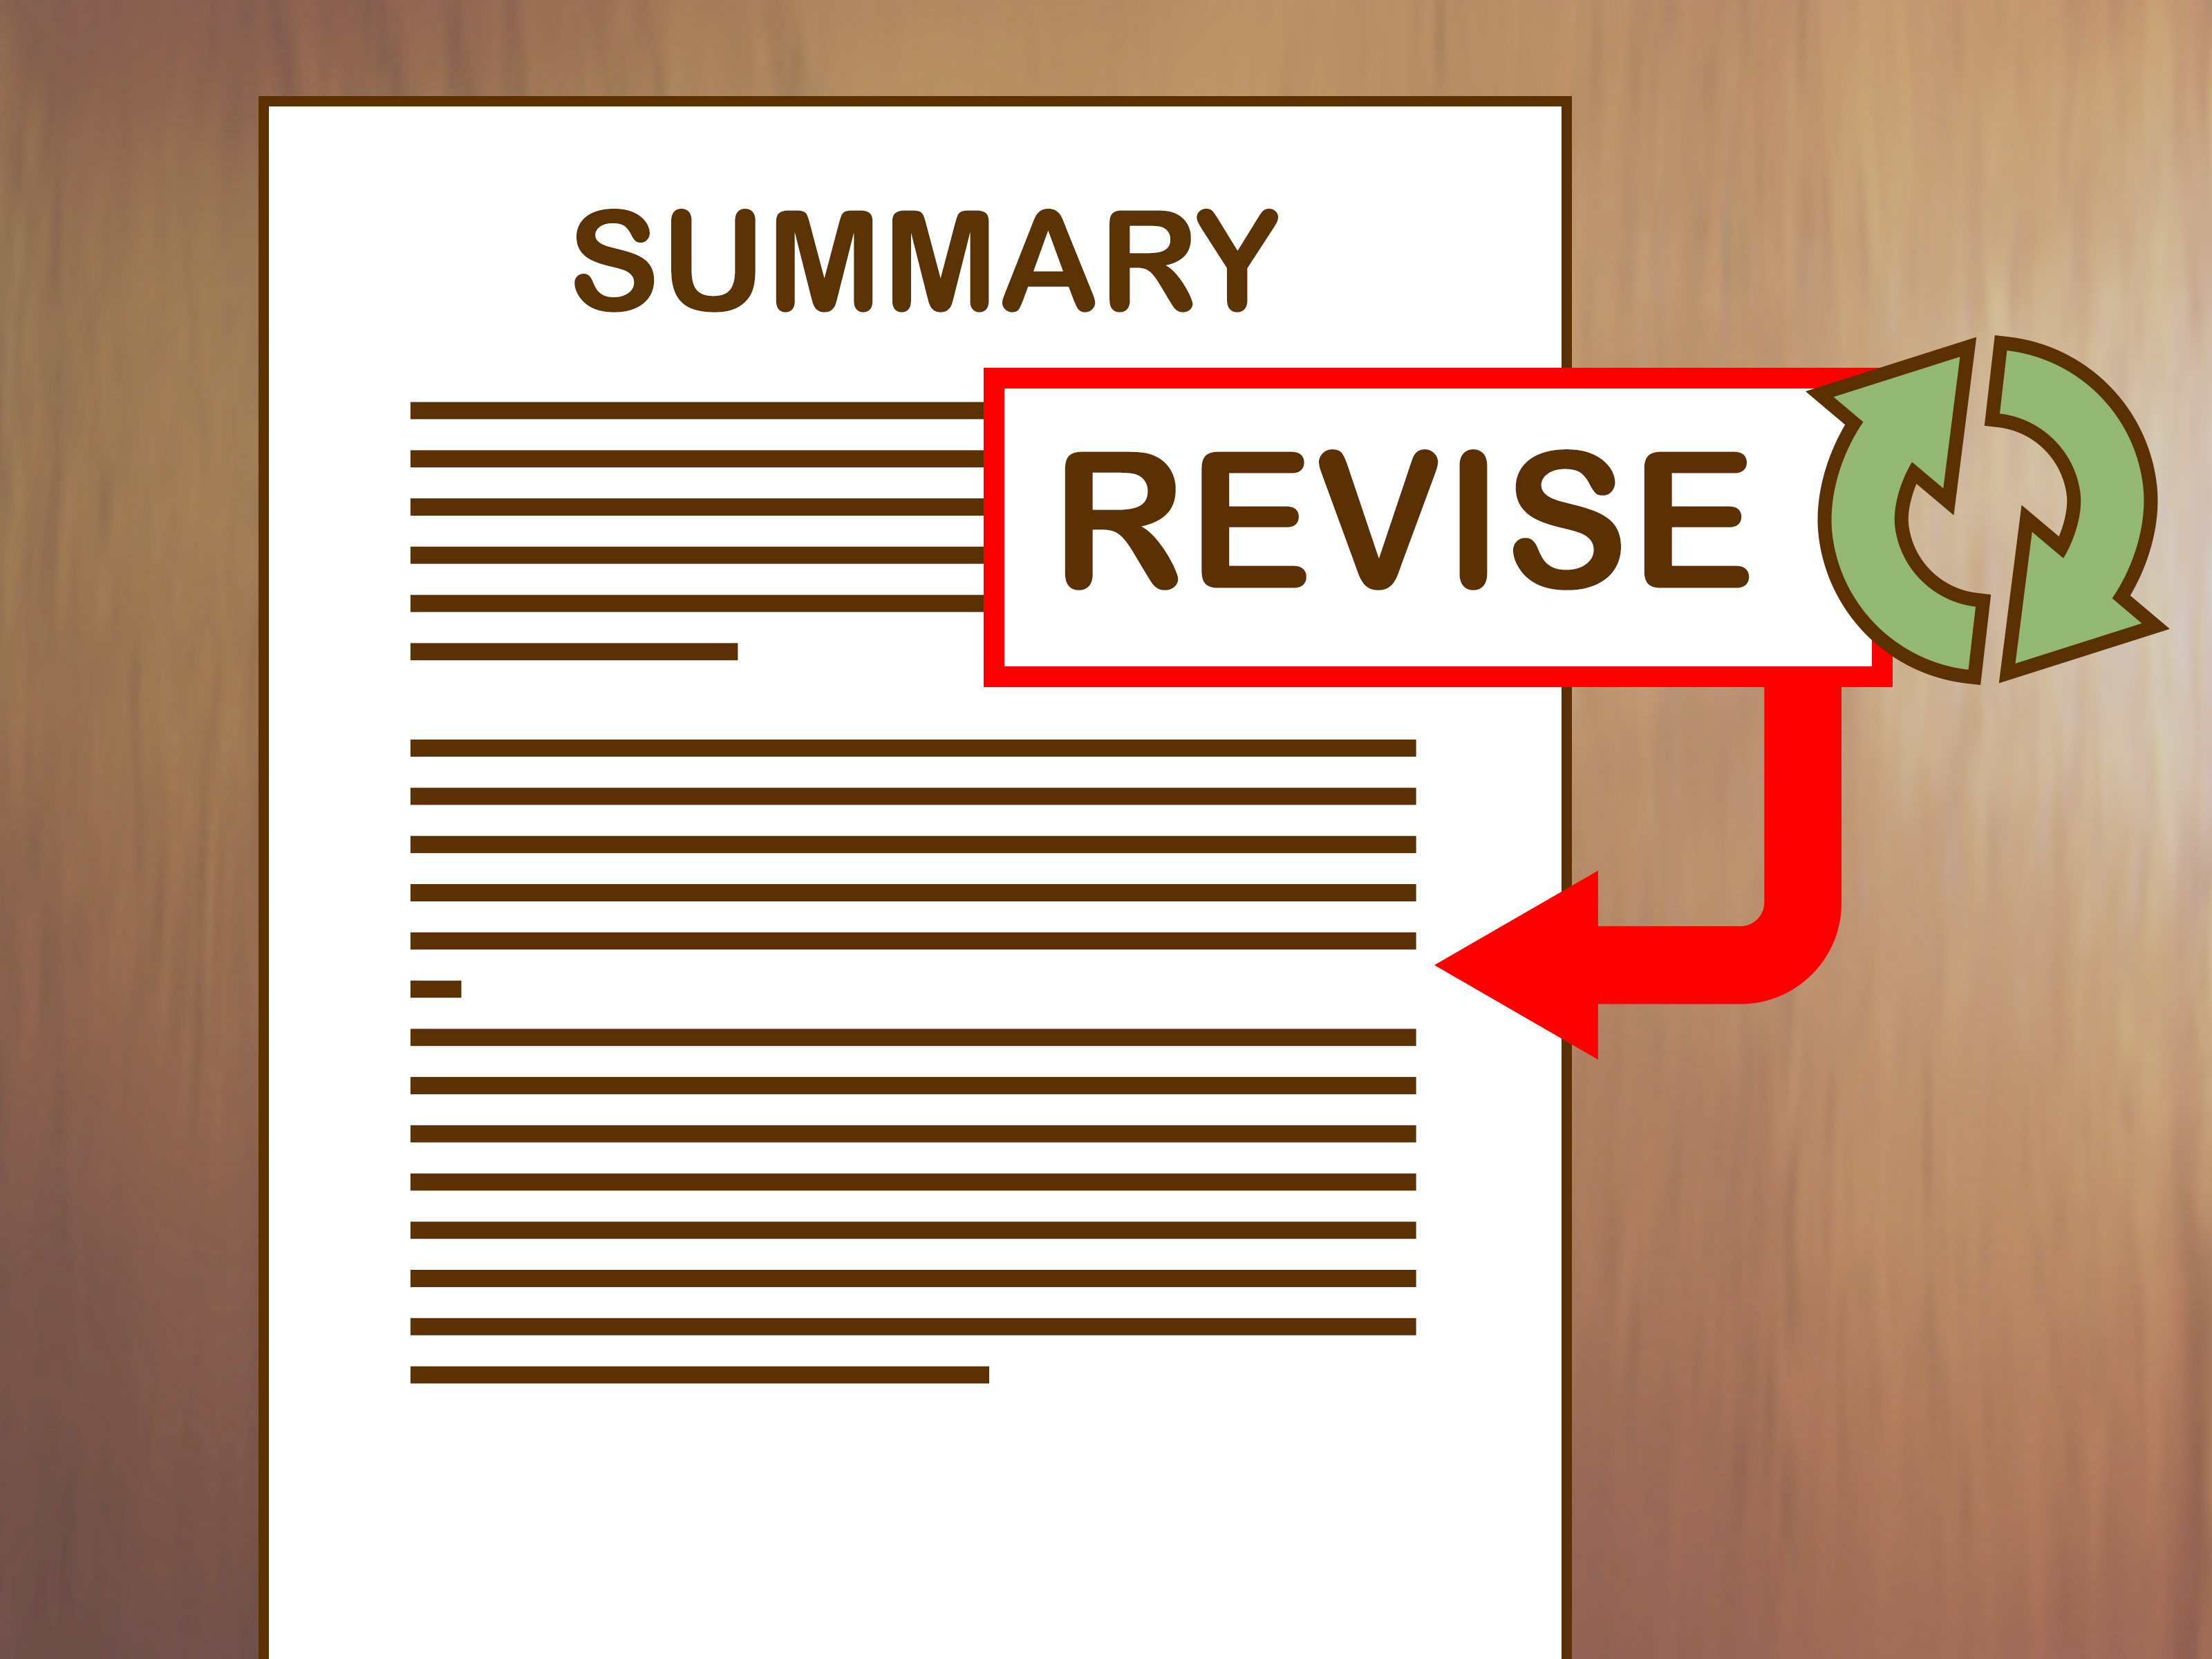 How To Summarize A Journal Article With Pictures